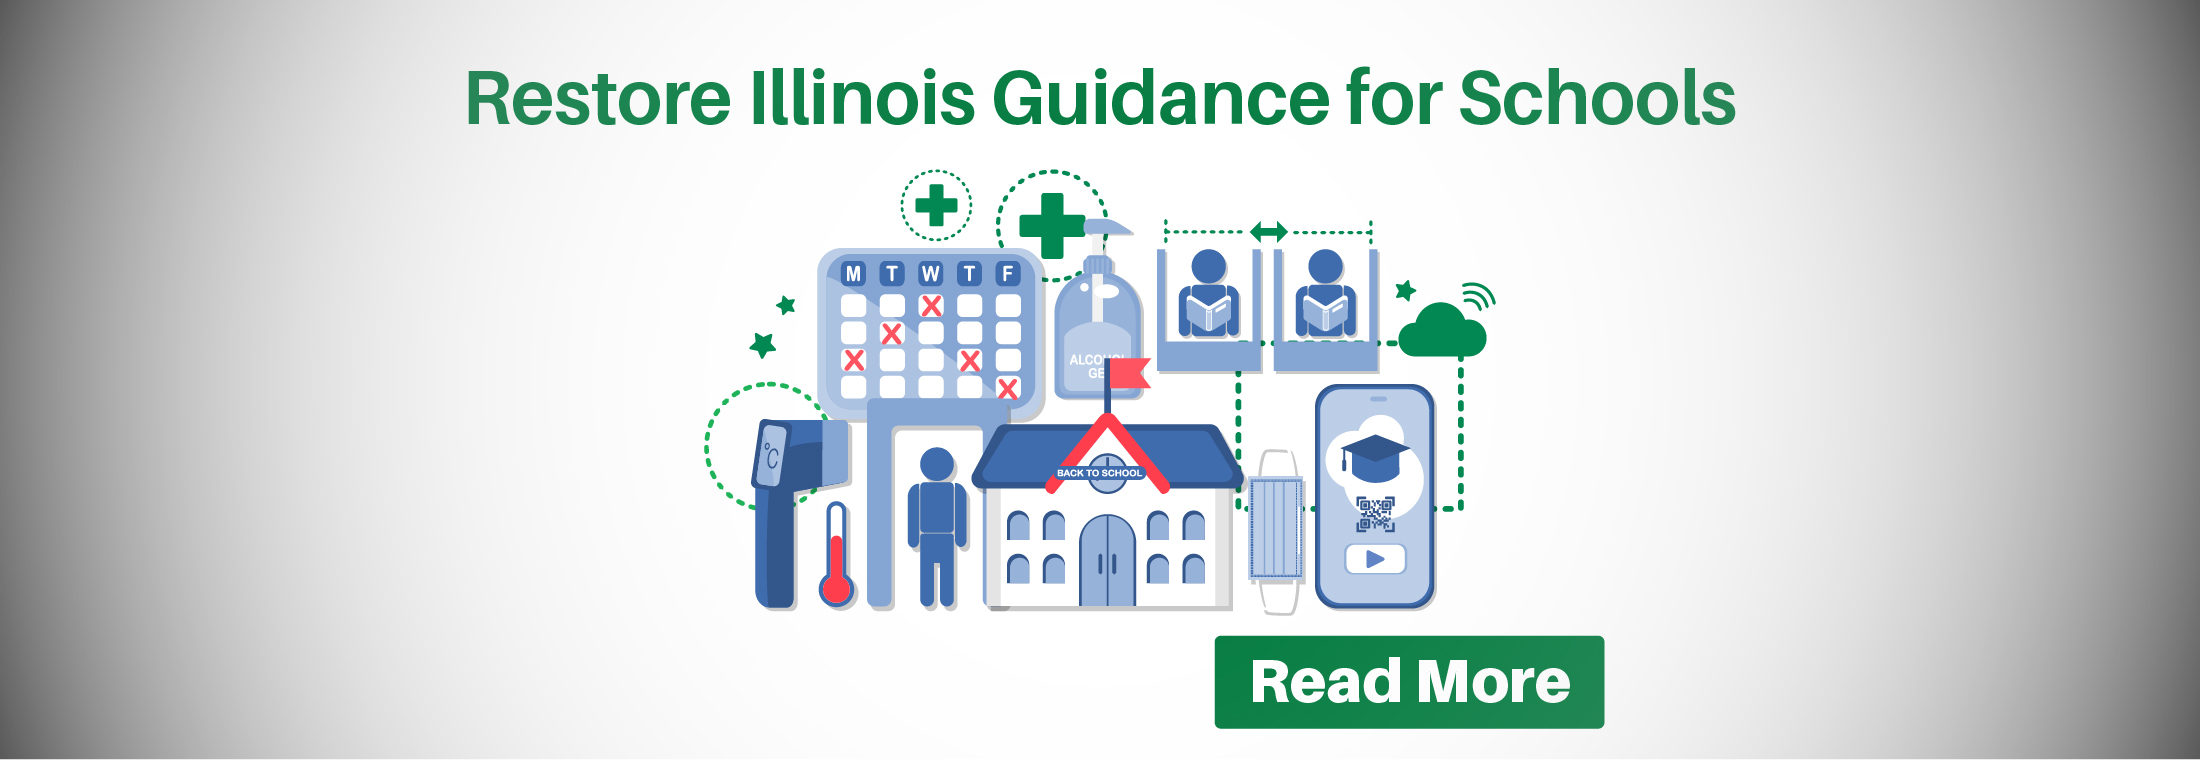 Restore Illinois Guidance for Schools